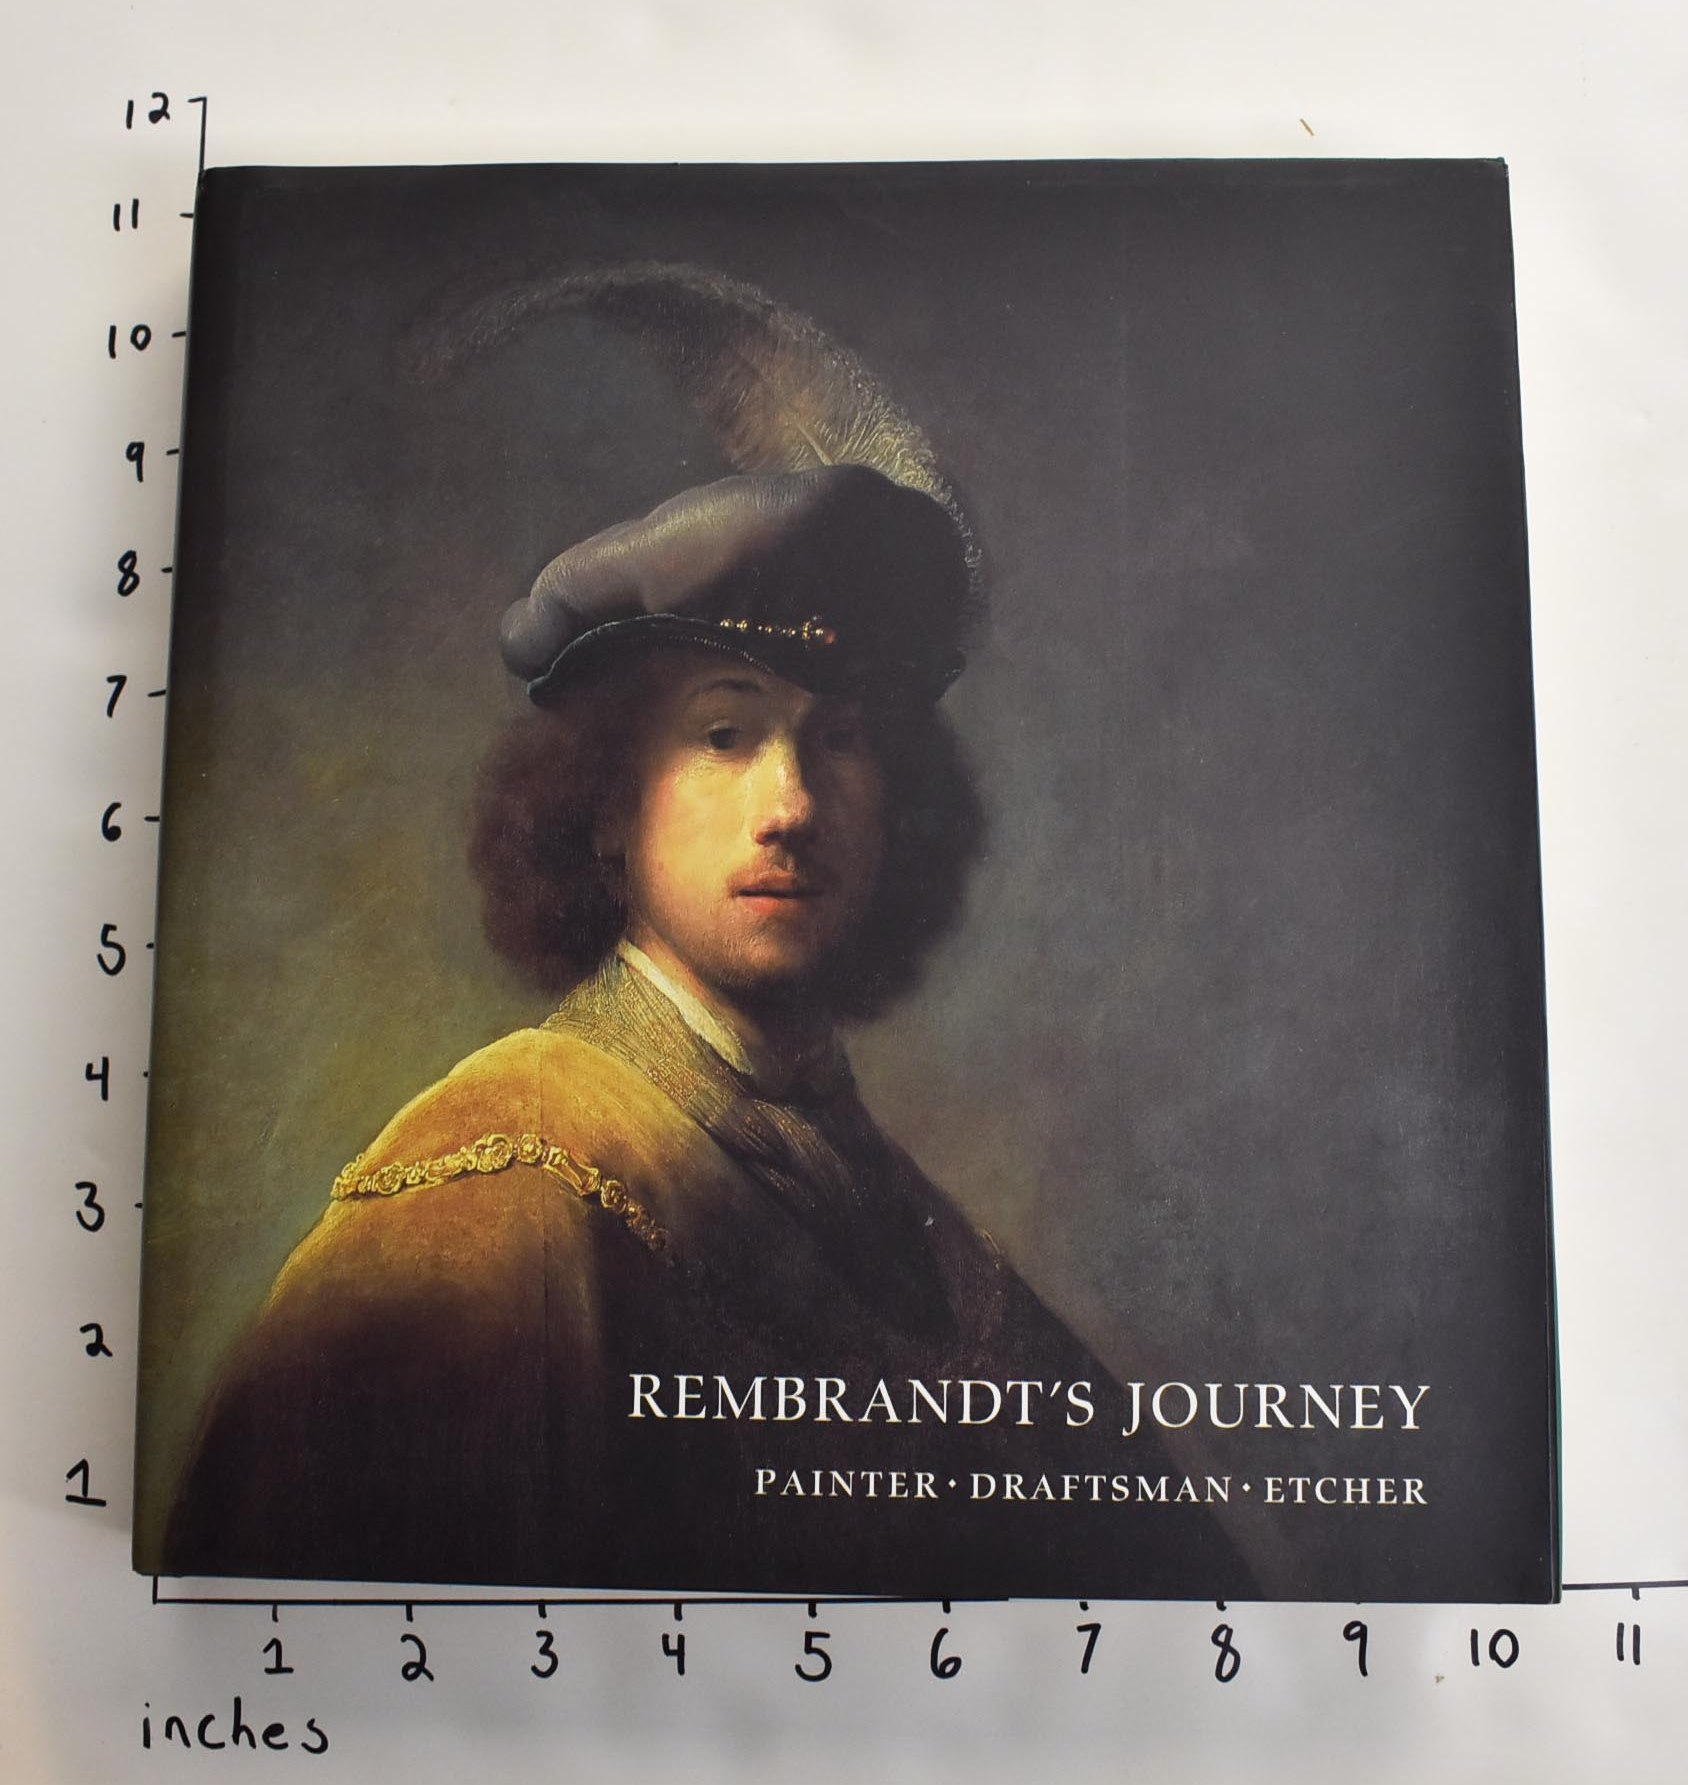 Rembrandt's Journey: Painter, Draftsman, Etcher by Clifford S  Ackley on  Mullen Books